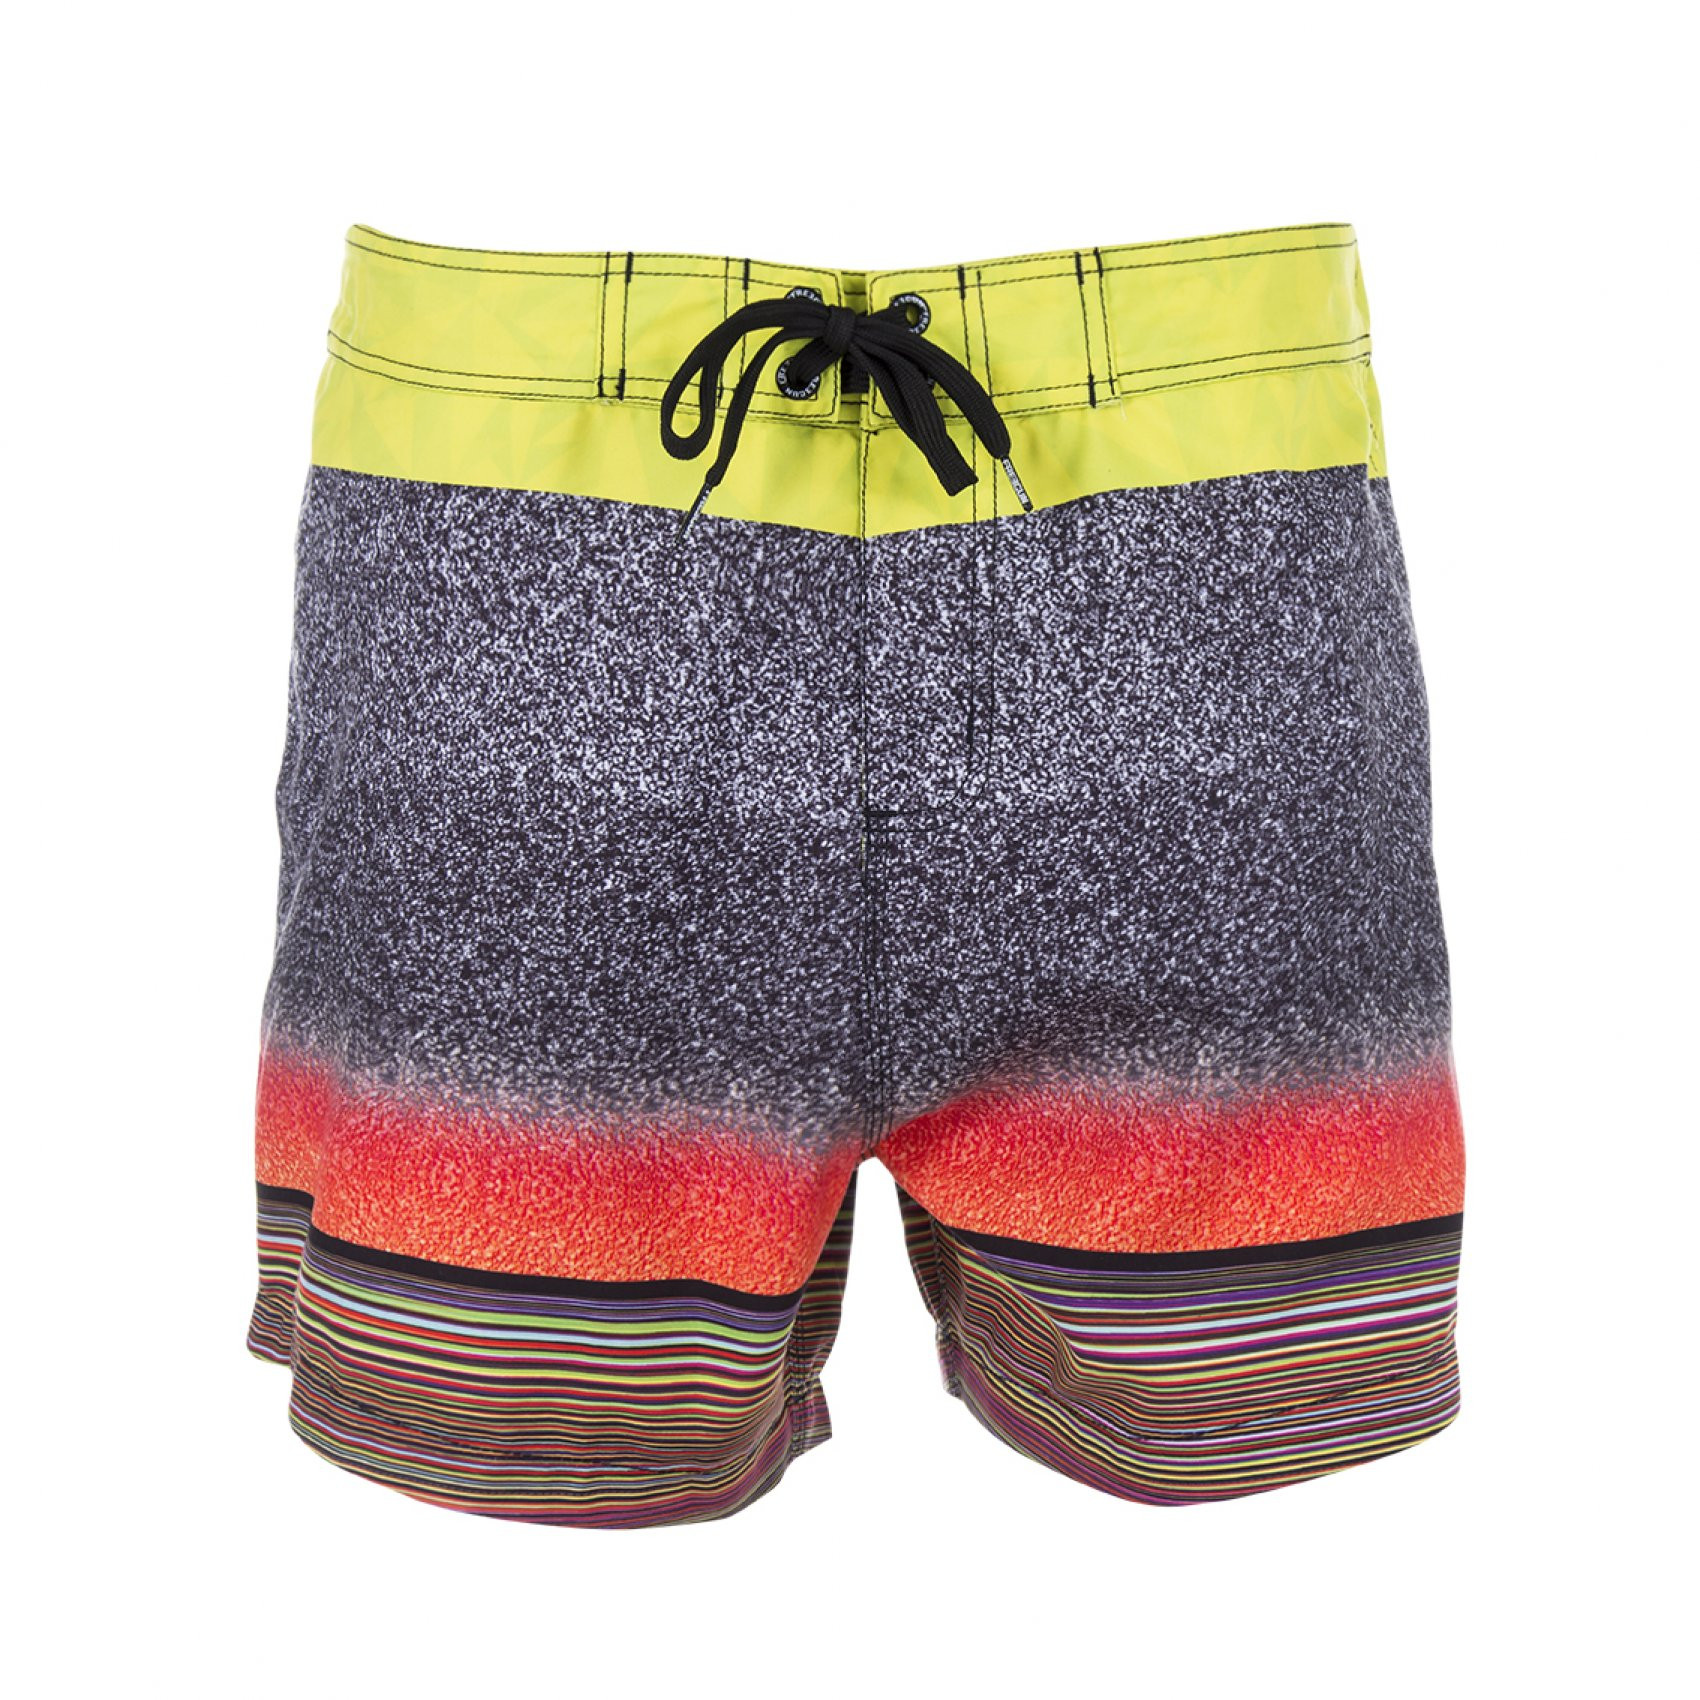 Boardshort garçon bim freegun (photo)